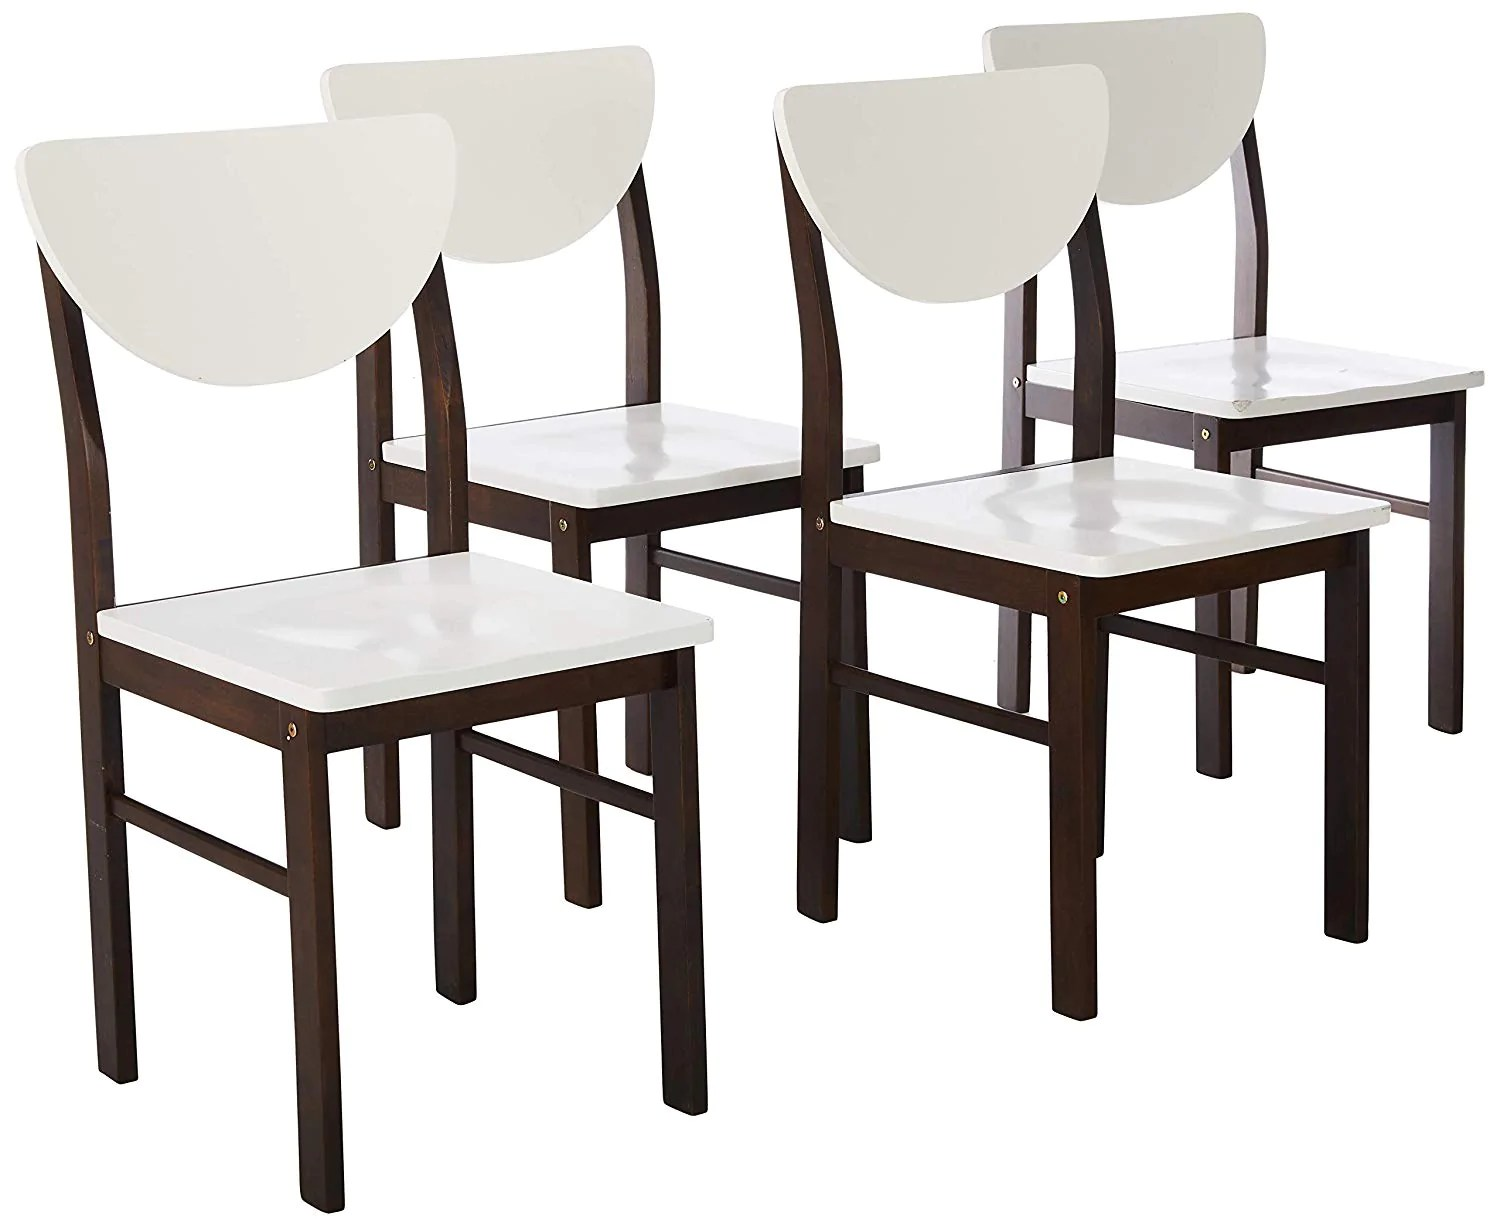 Lori Kitchen Dinette Retro Dining Chairs White Walnut Wood Contemporary Set Of 4 Pilaster Designs